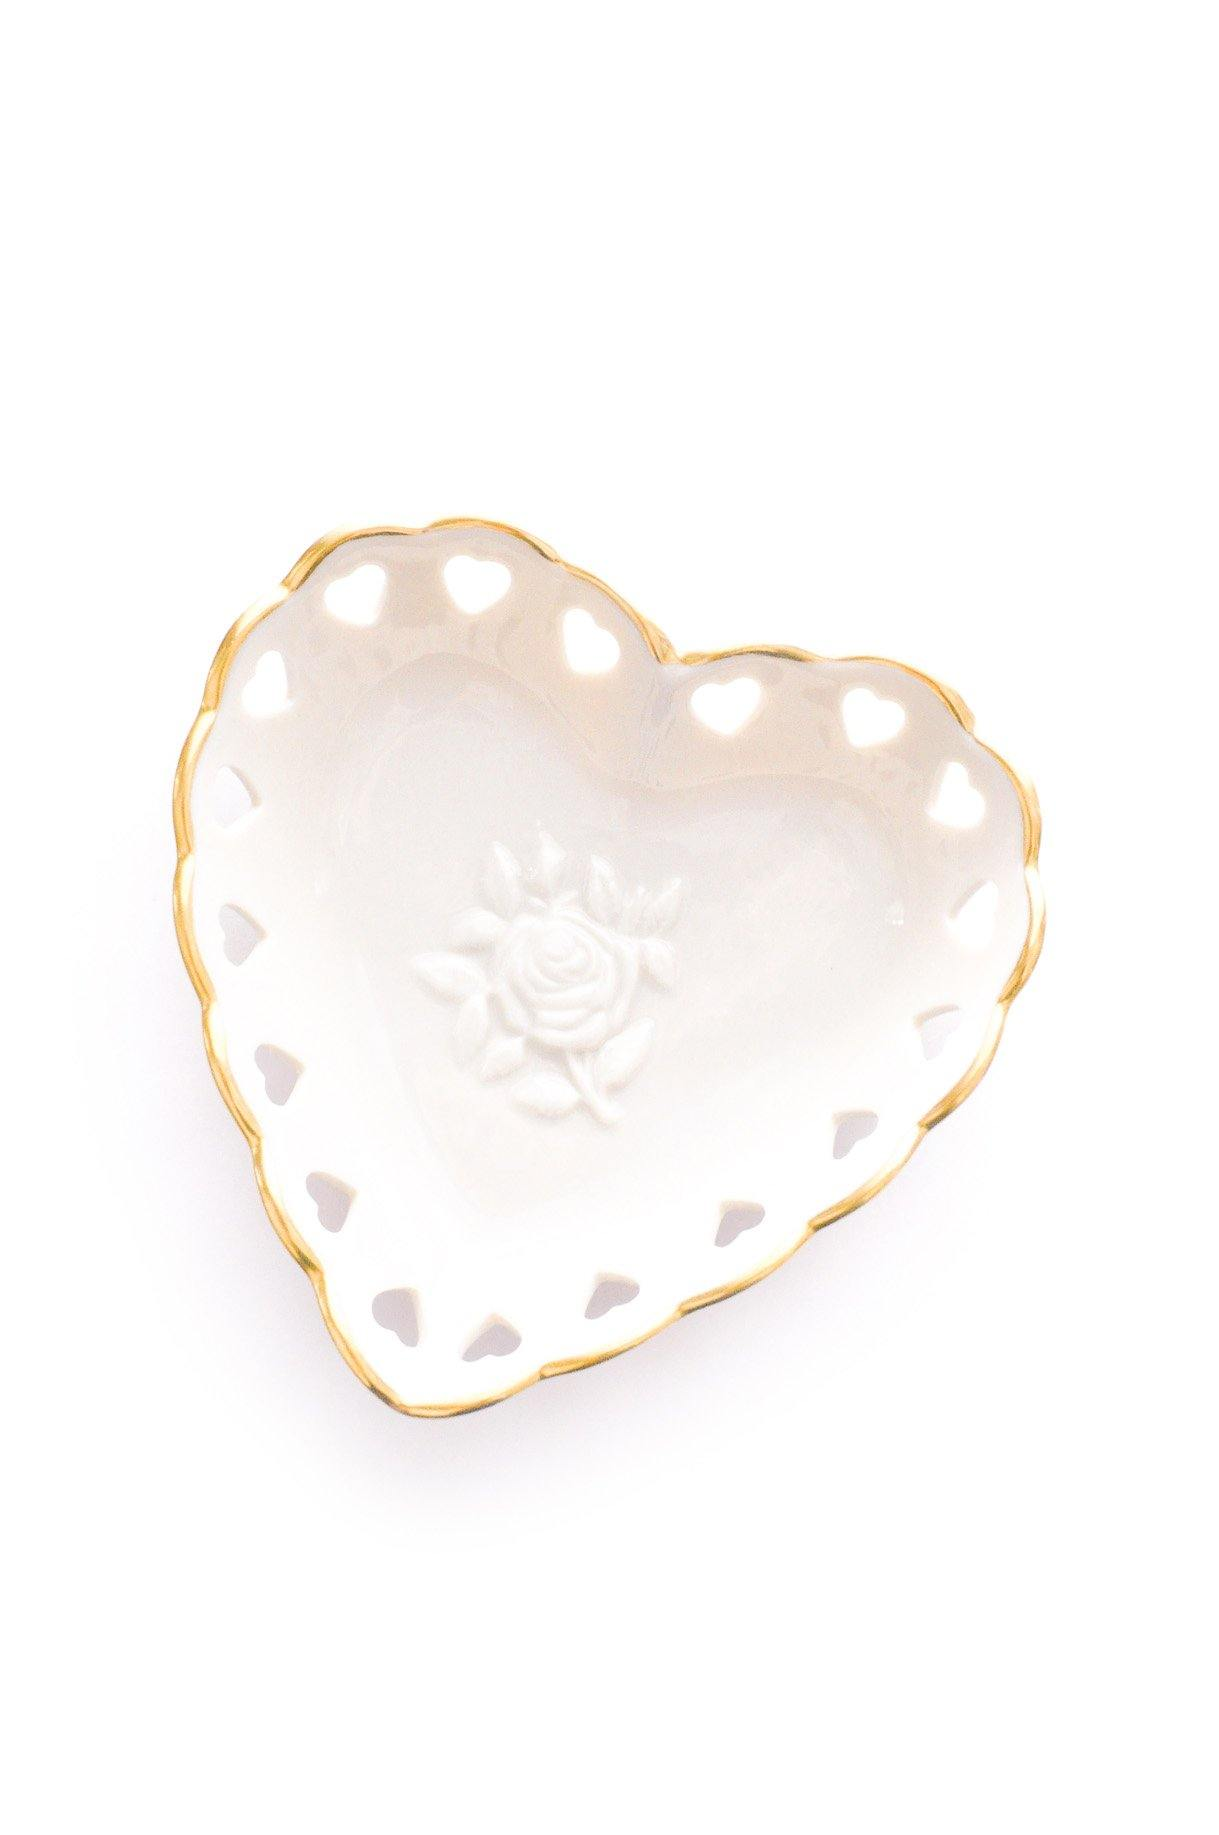 Heart Cutout Jewelry Dish